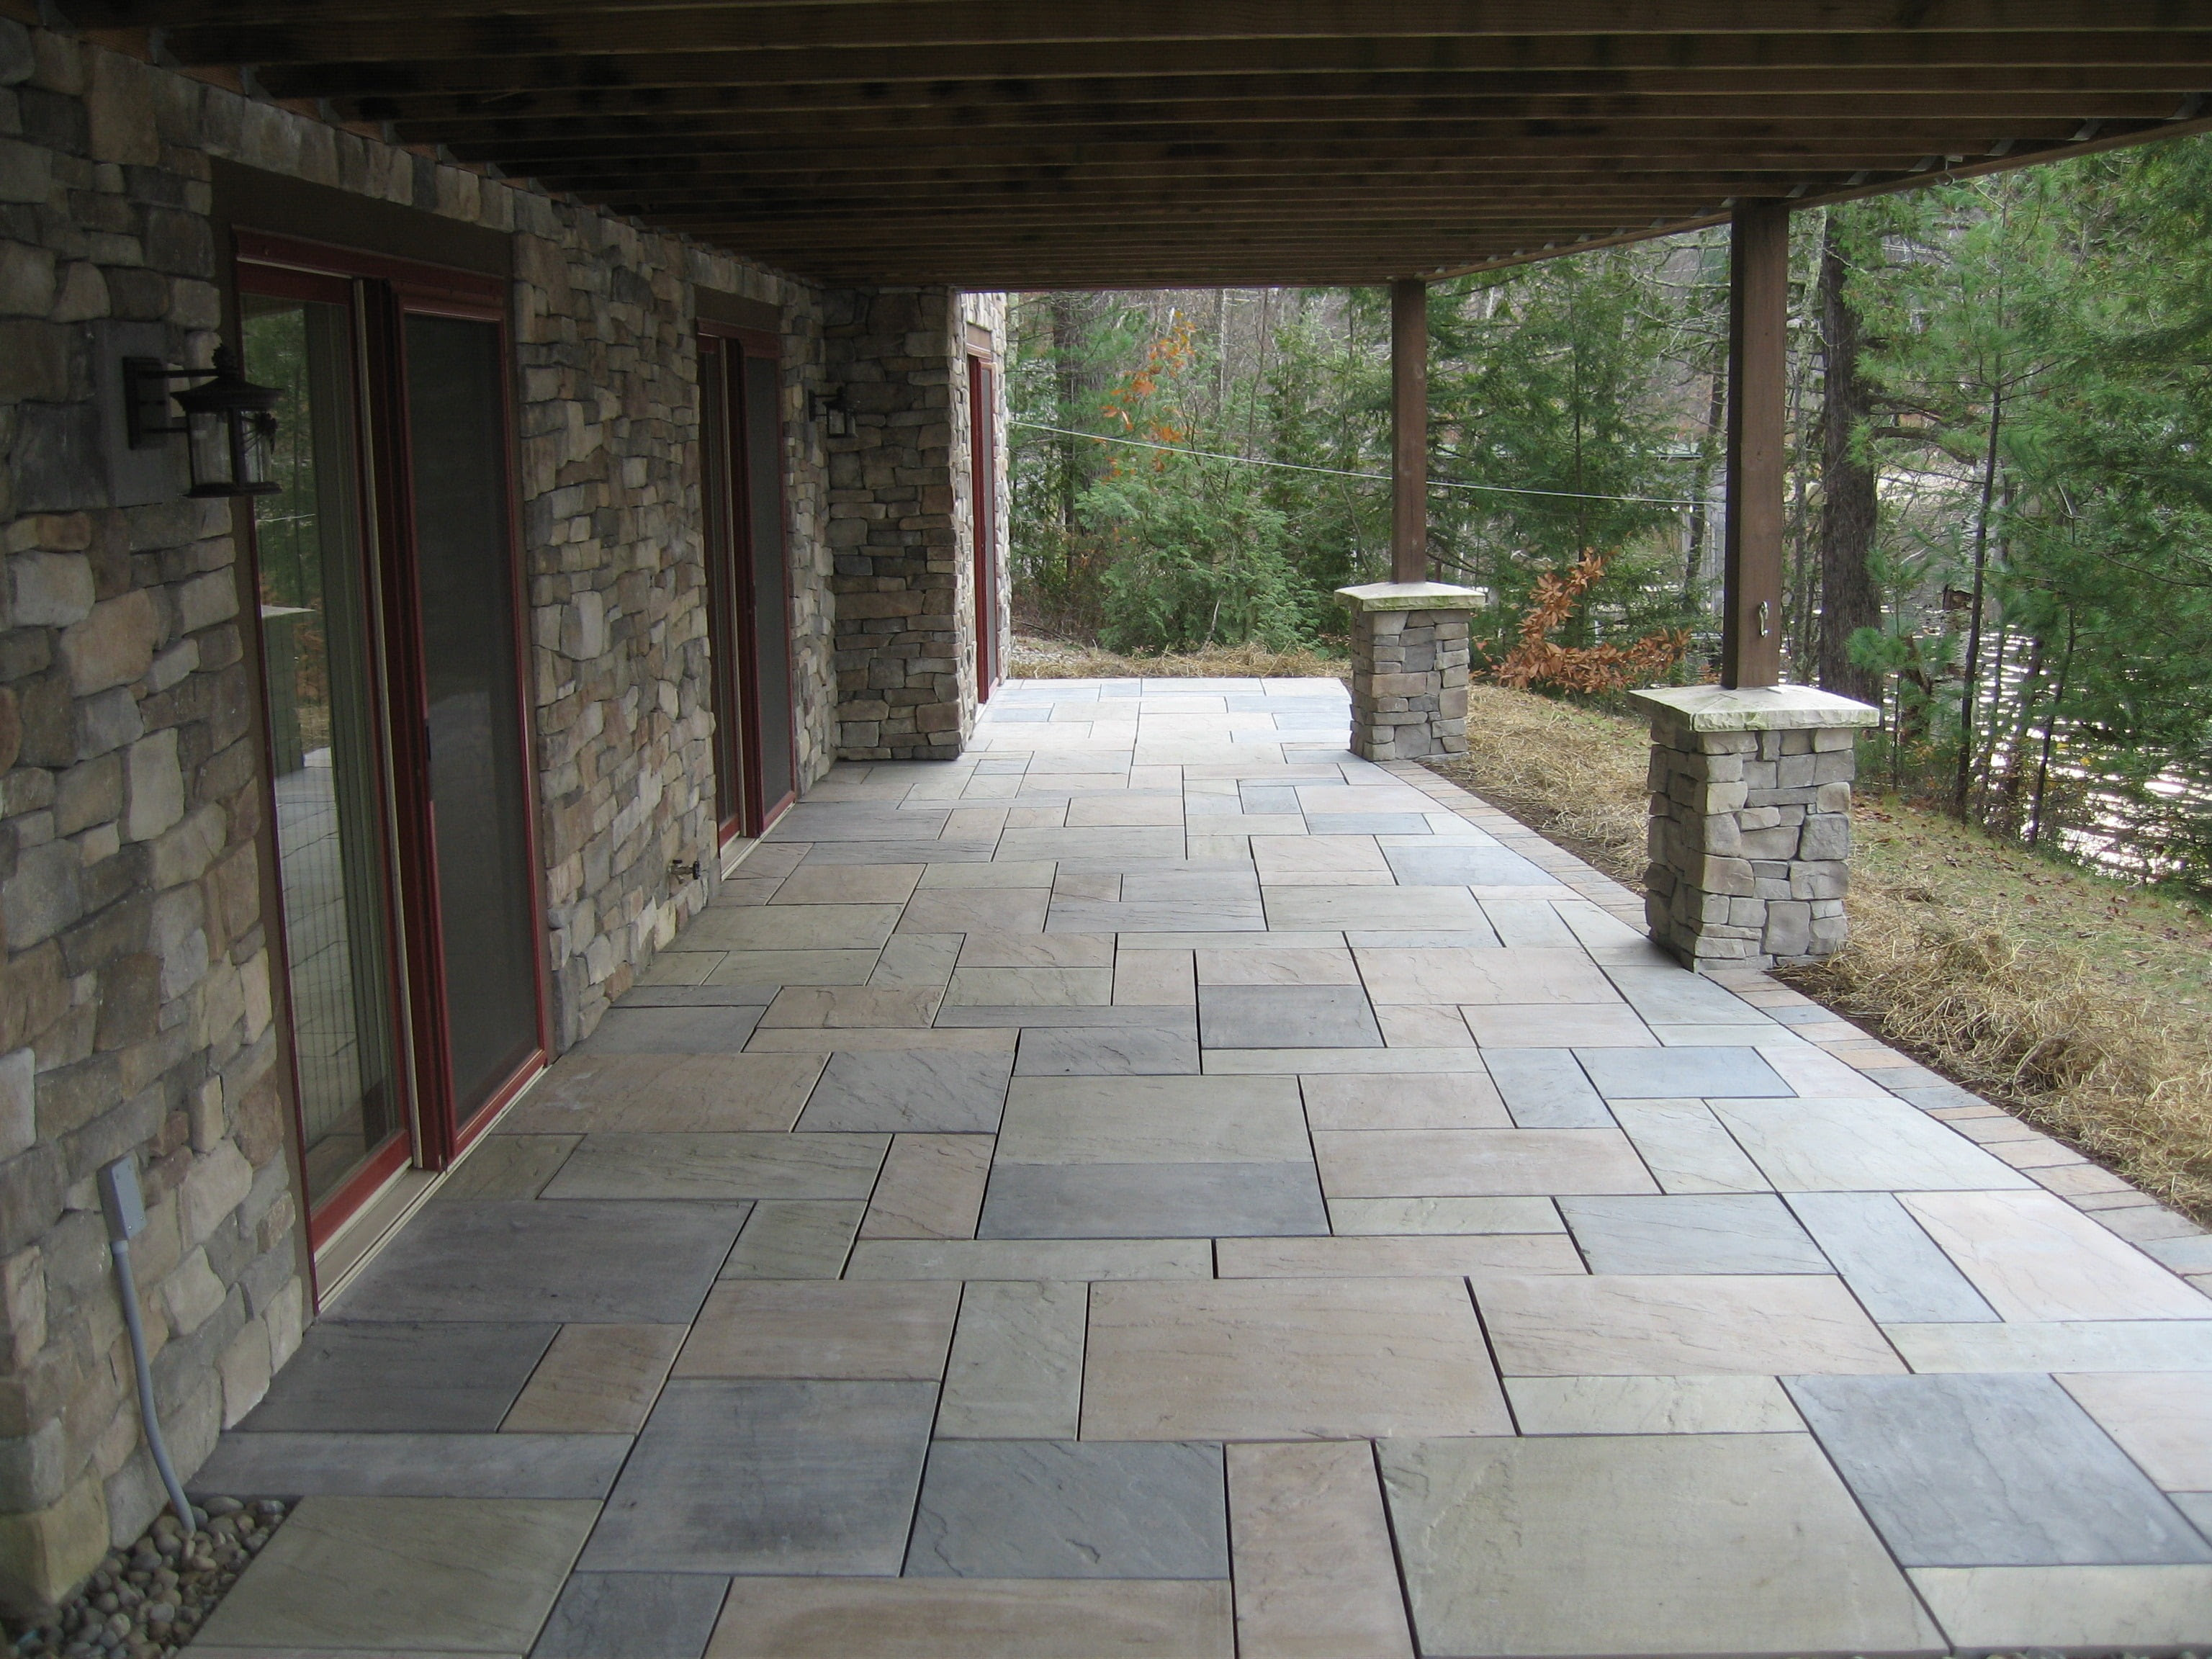 How To Pick The Best Pavers For Your Patio - RI Landscaper ...